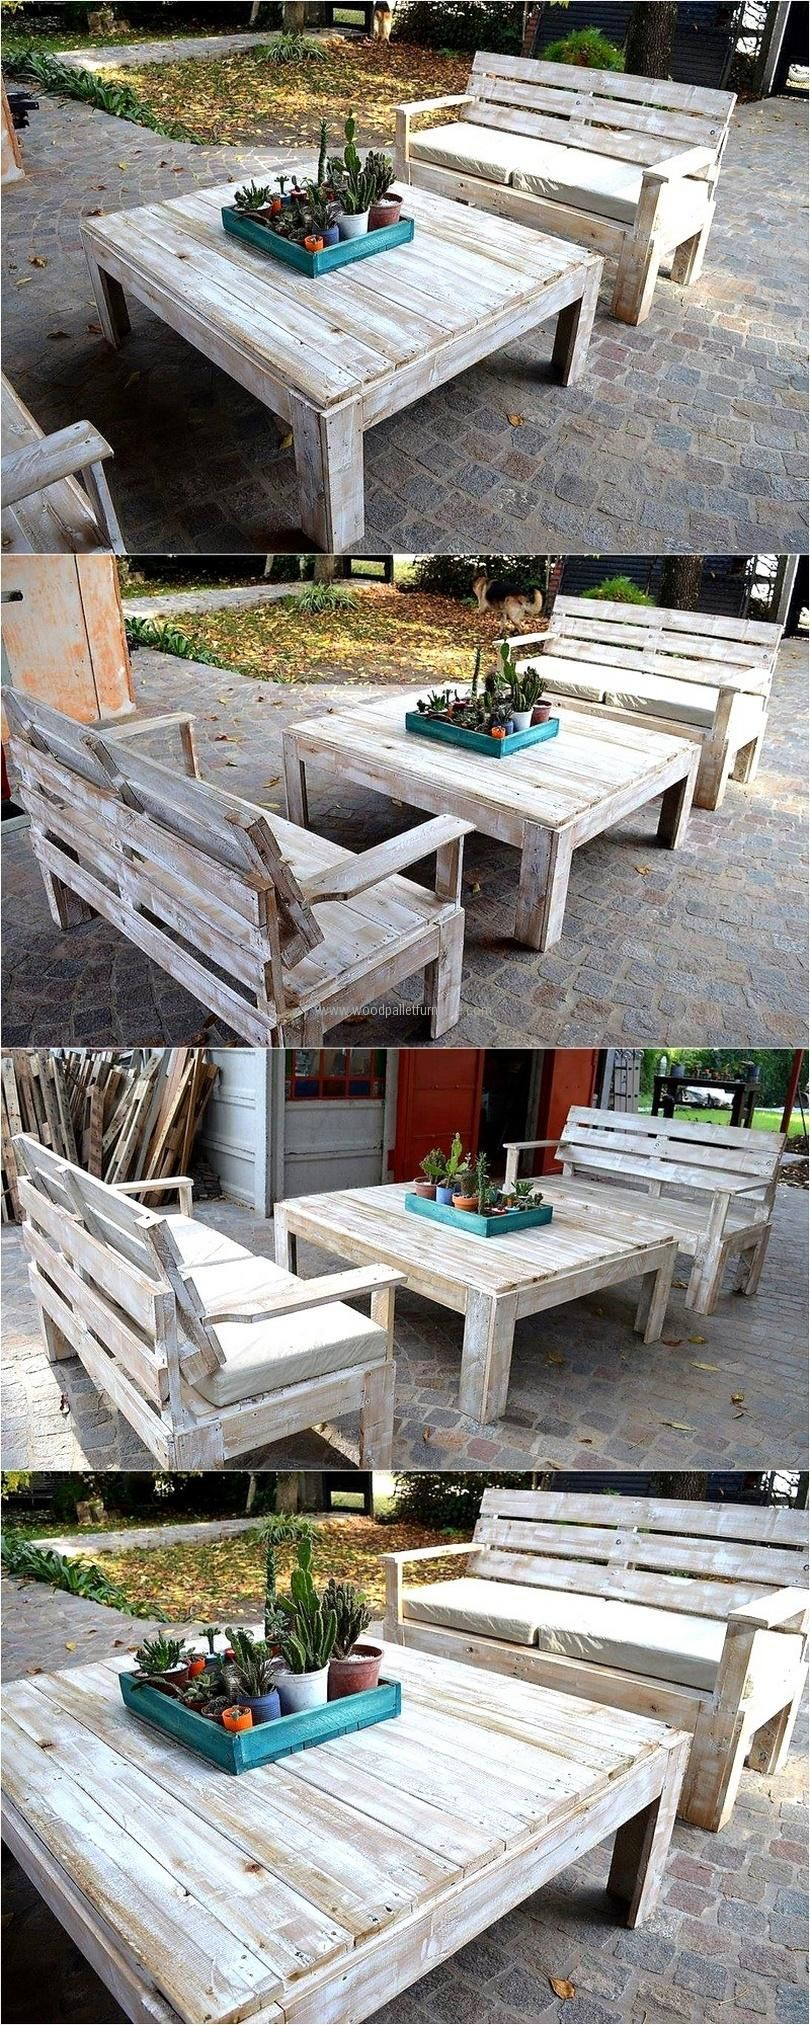 pallet-patio-furniture-idea | pallet craft ideas | pinterest | möbel